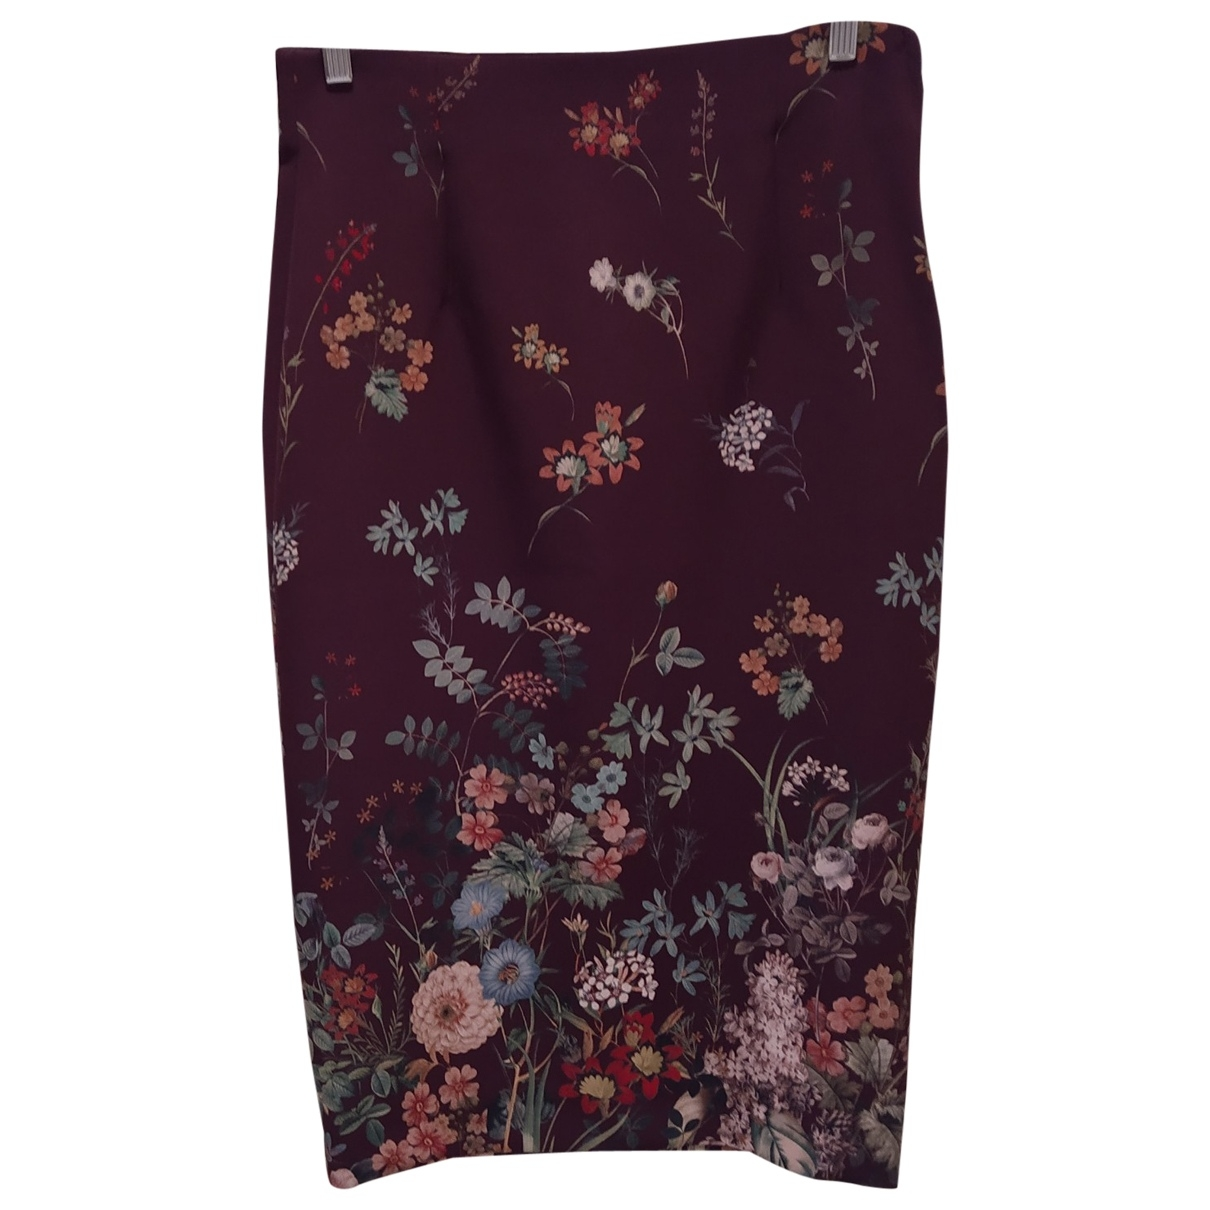 Zara \N Multicolour skirt for Women L International